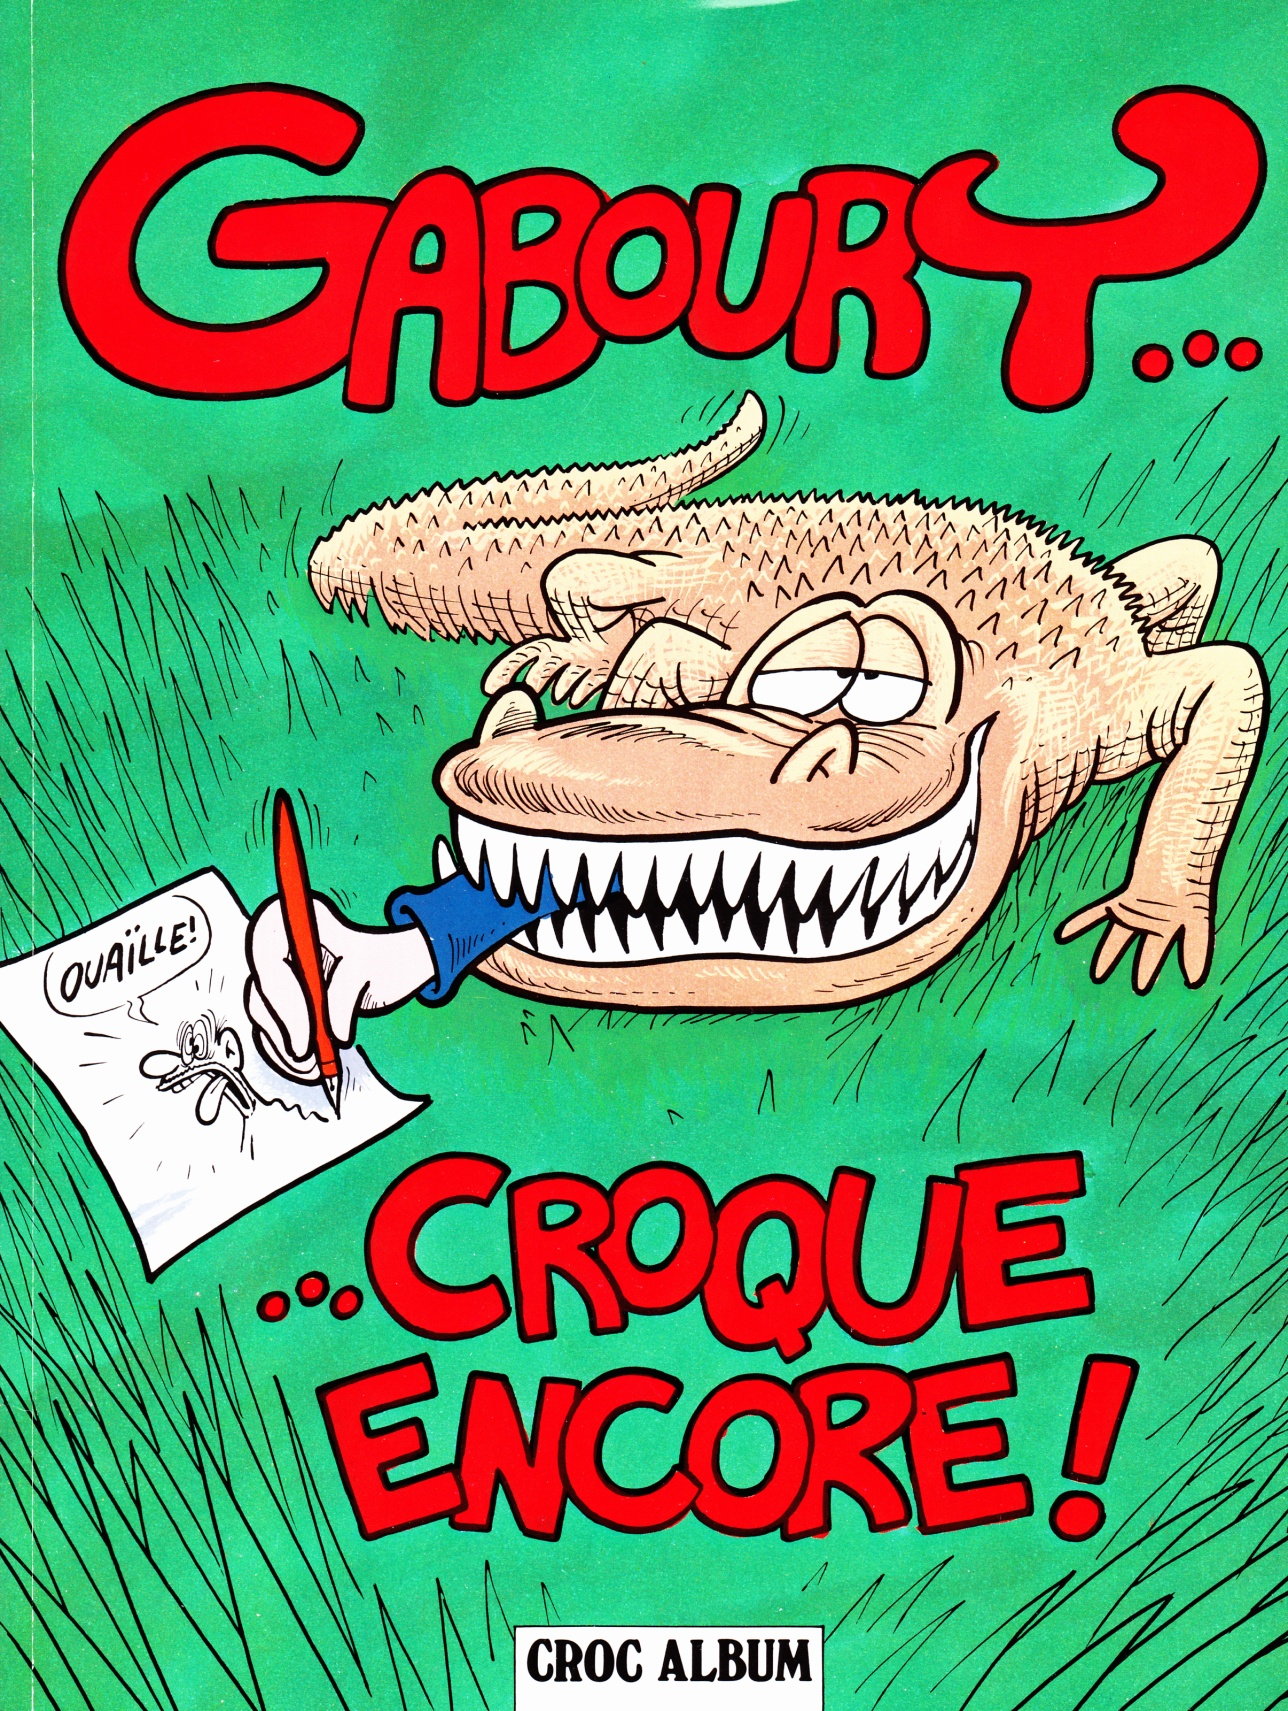 C:\Users\Robert\Documents\CARTOONING ILLUSTRATION ANIMATION\IMAGE BY CARTOONIST\G\GABOURY Serge, Gaboury Croque Encore, fc..jpg